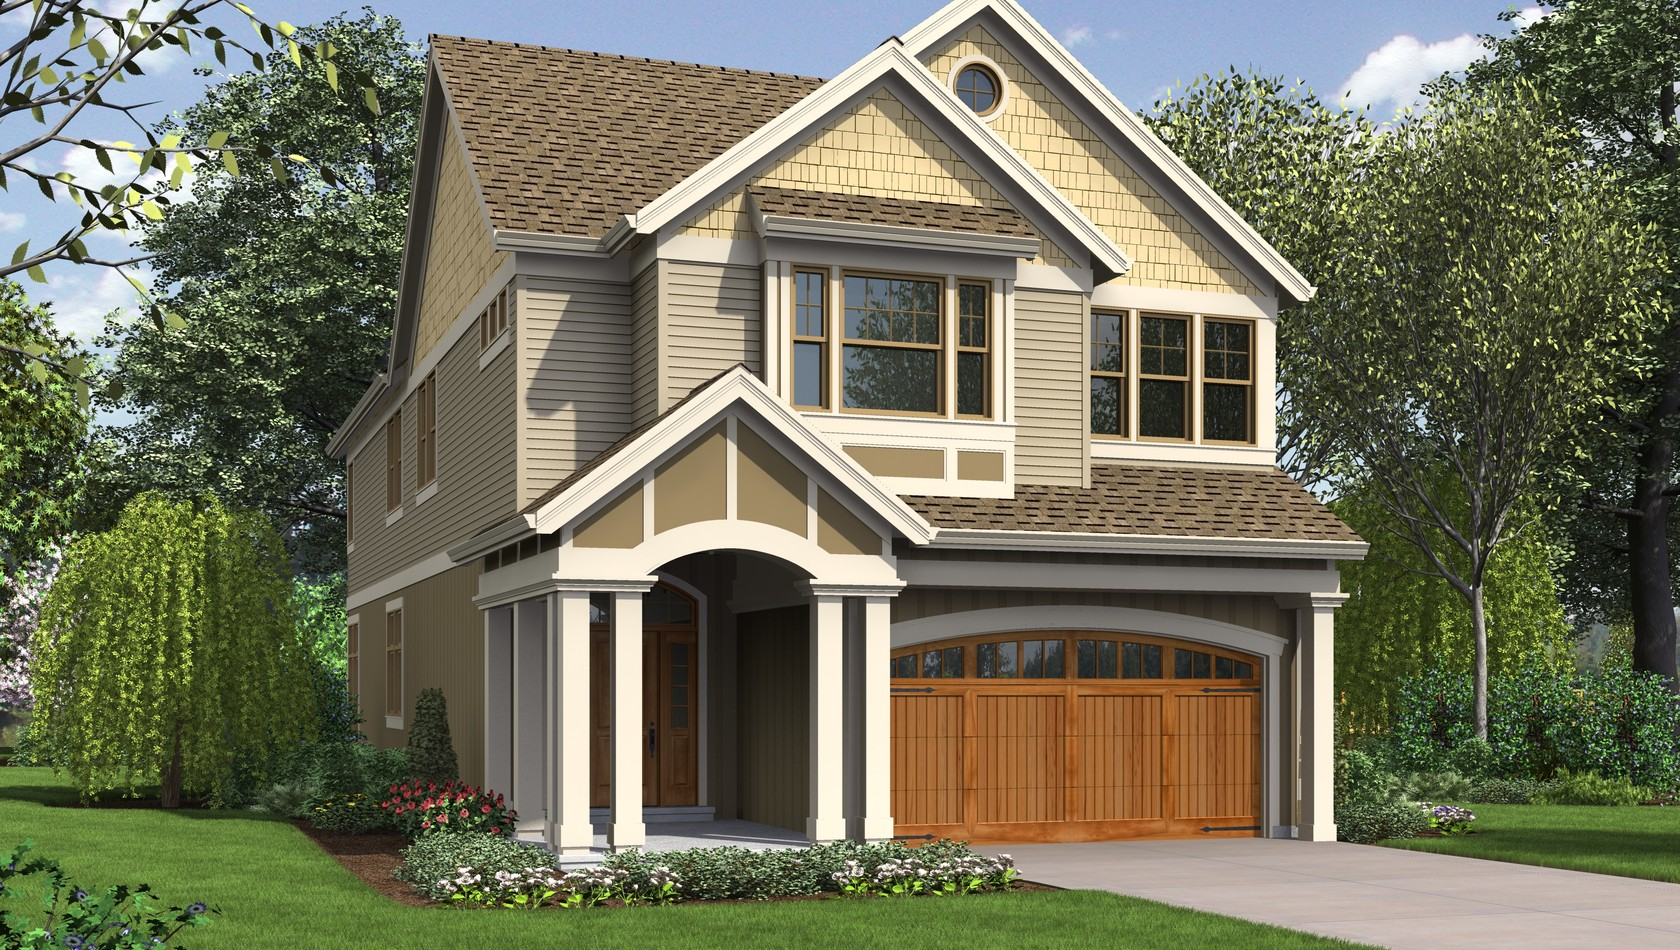 Main image for house plan 2399: The Laurelhurst